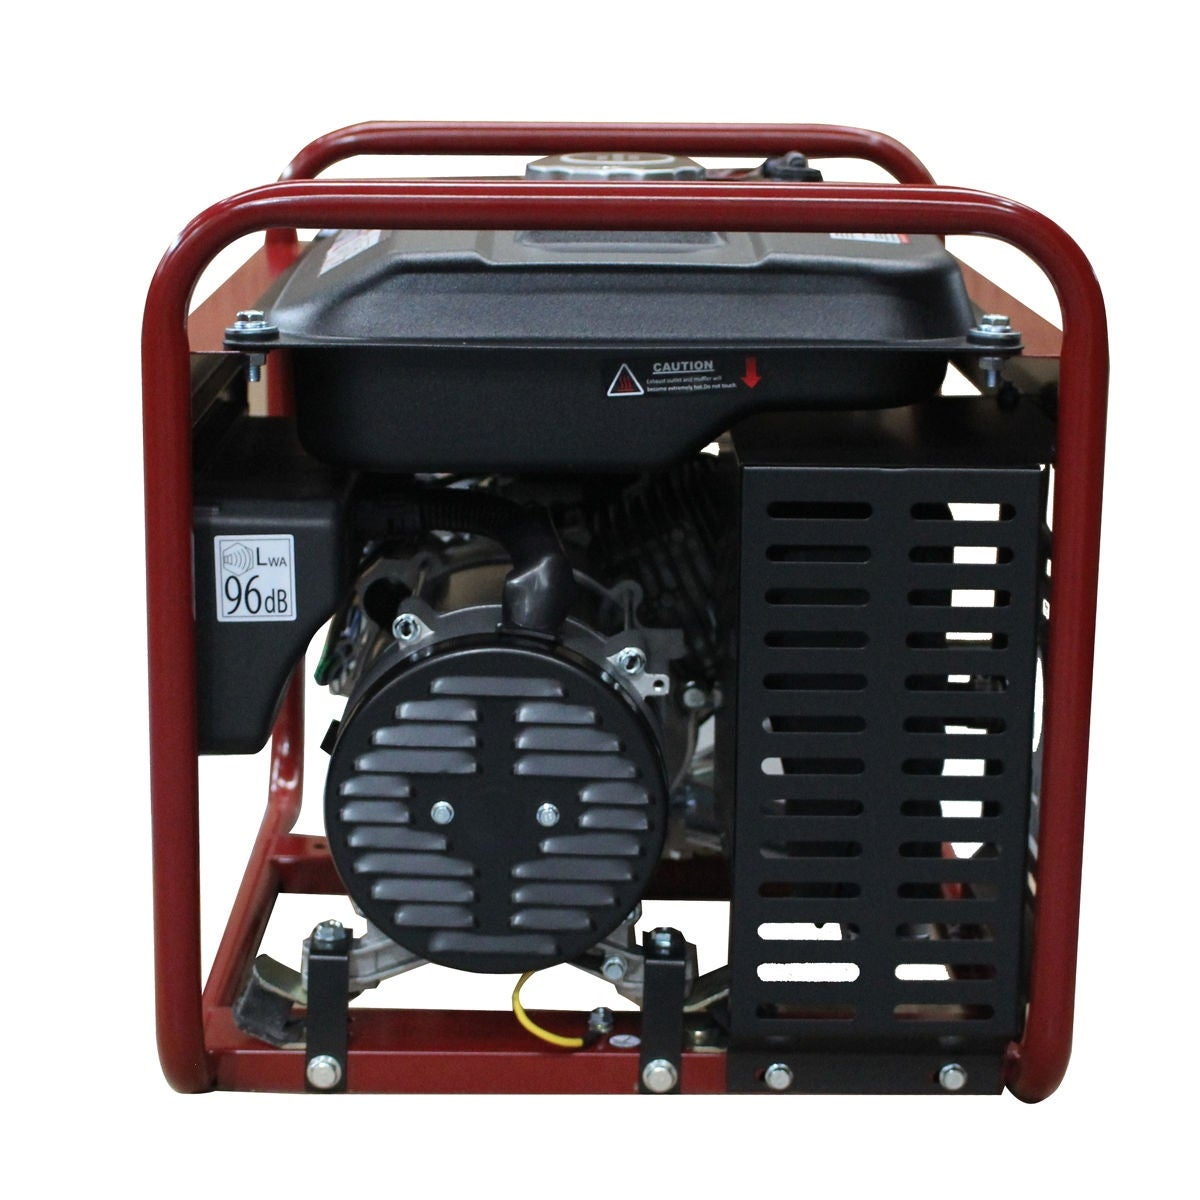 Wondrous Costway 4000W Gasoline Generator 4 Stroke 208Cc Air Cooled Gas Powered Portable Epa As Pic Download Free Architecture Designs Scobabritishbridgeorg